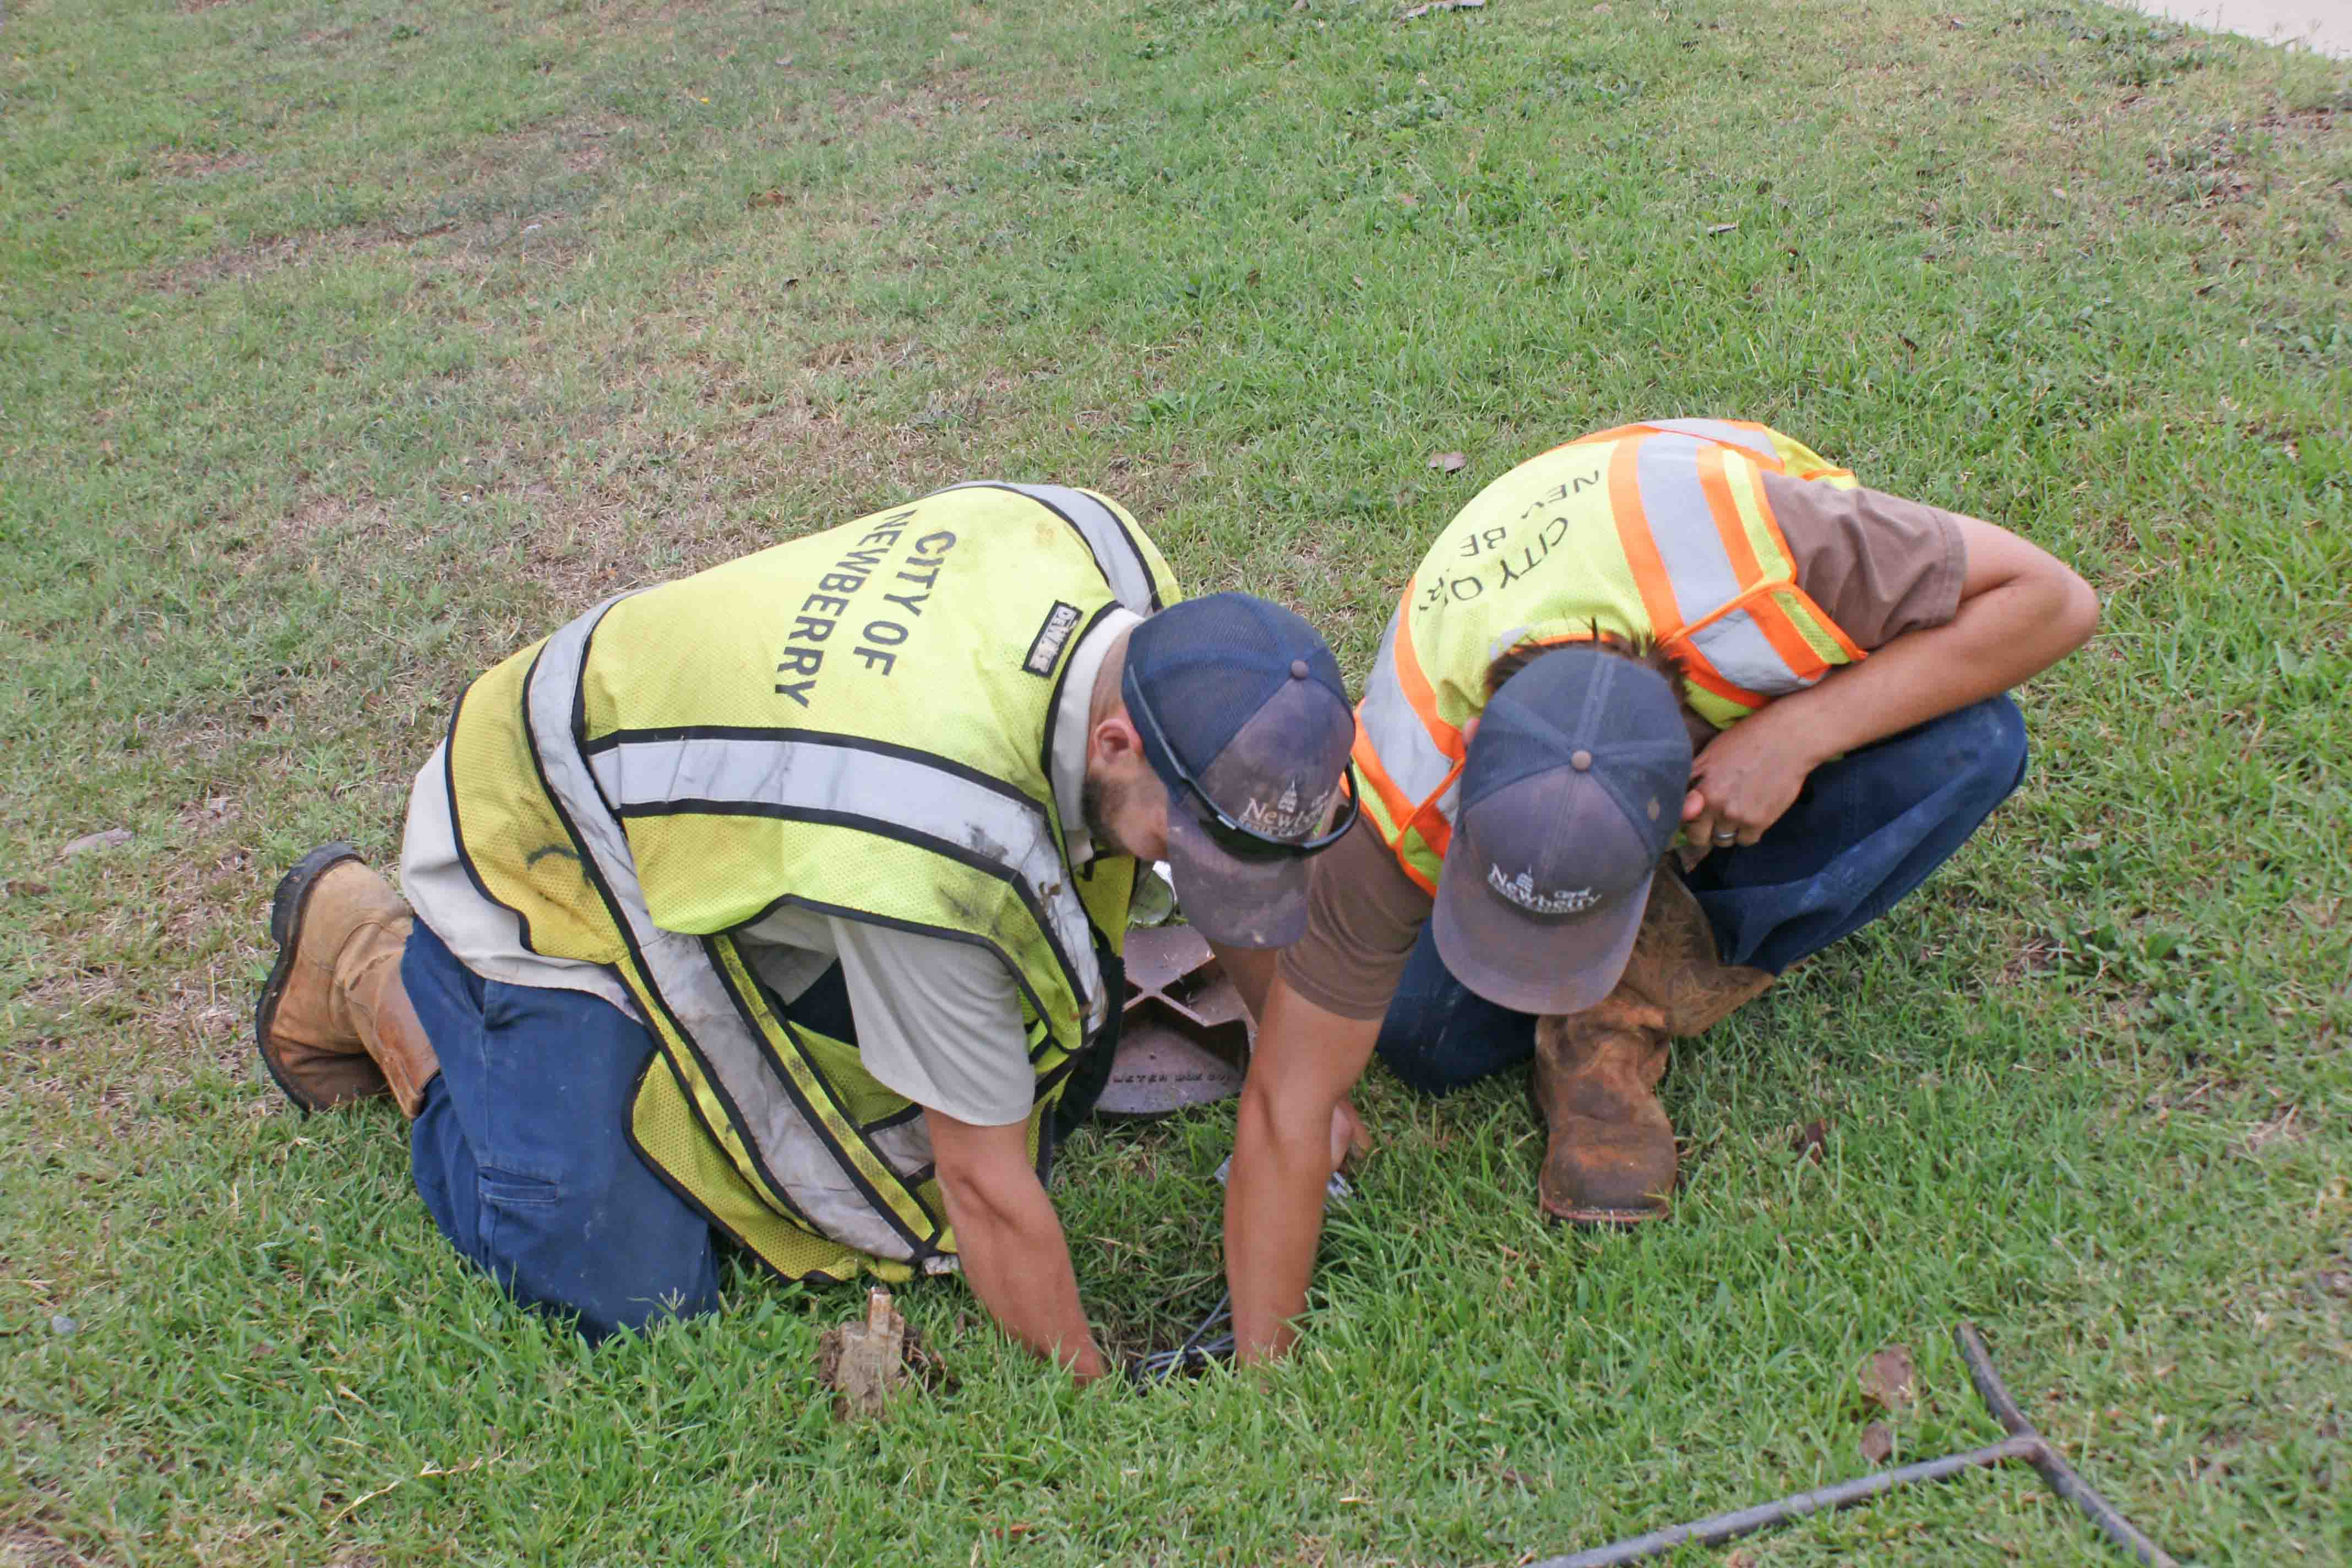 City of Newberry sewer employees changing out a water meter